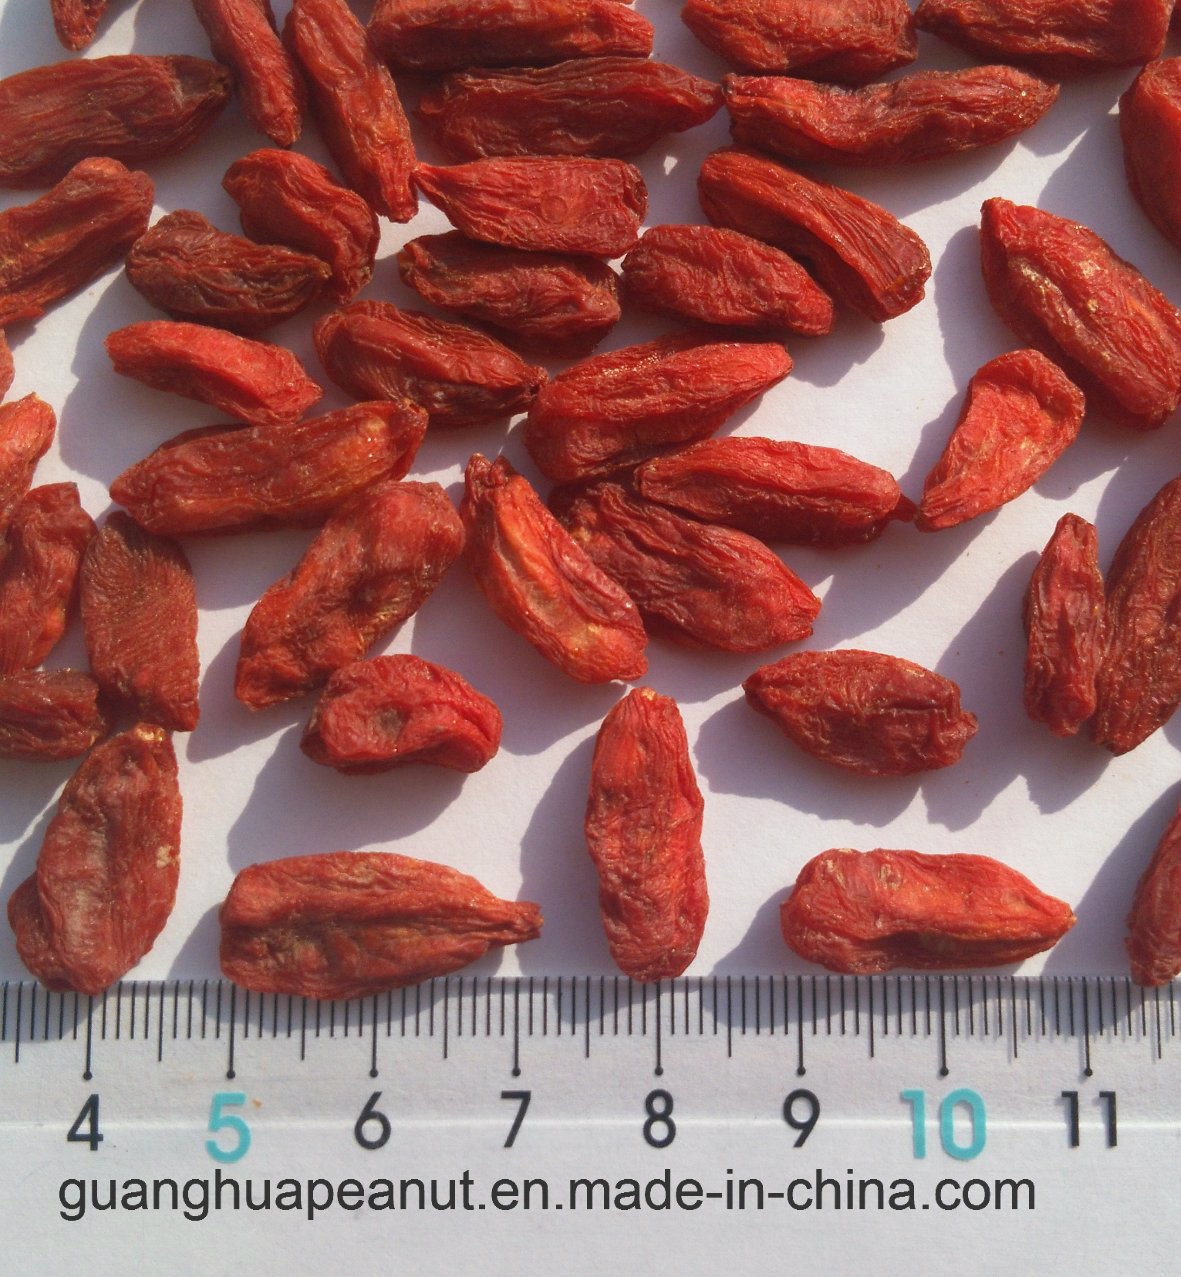 Best Quality Organic Dried Goji Berry